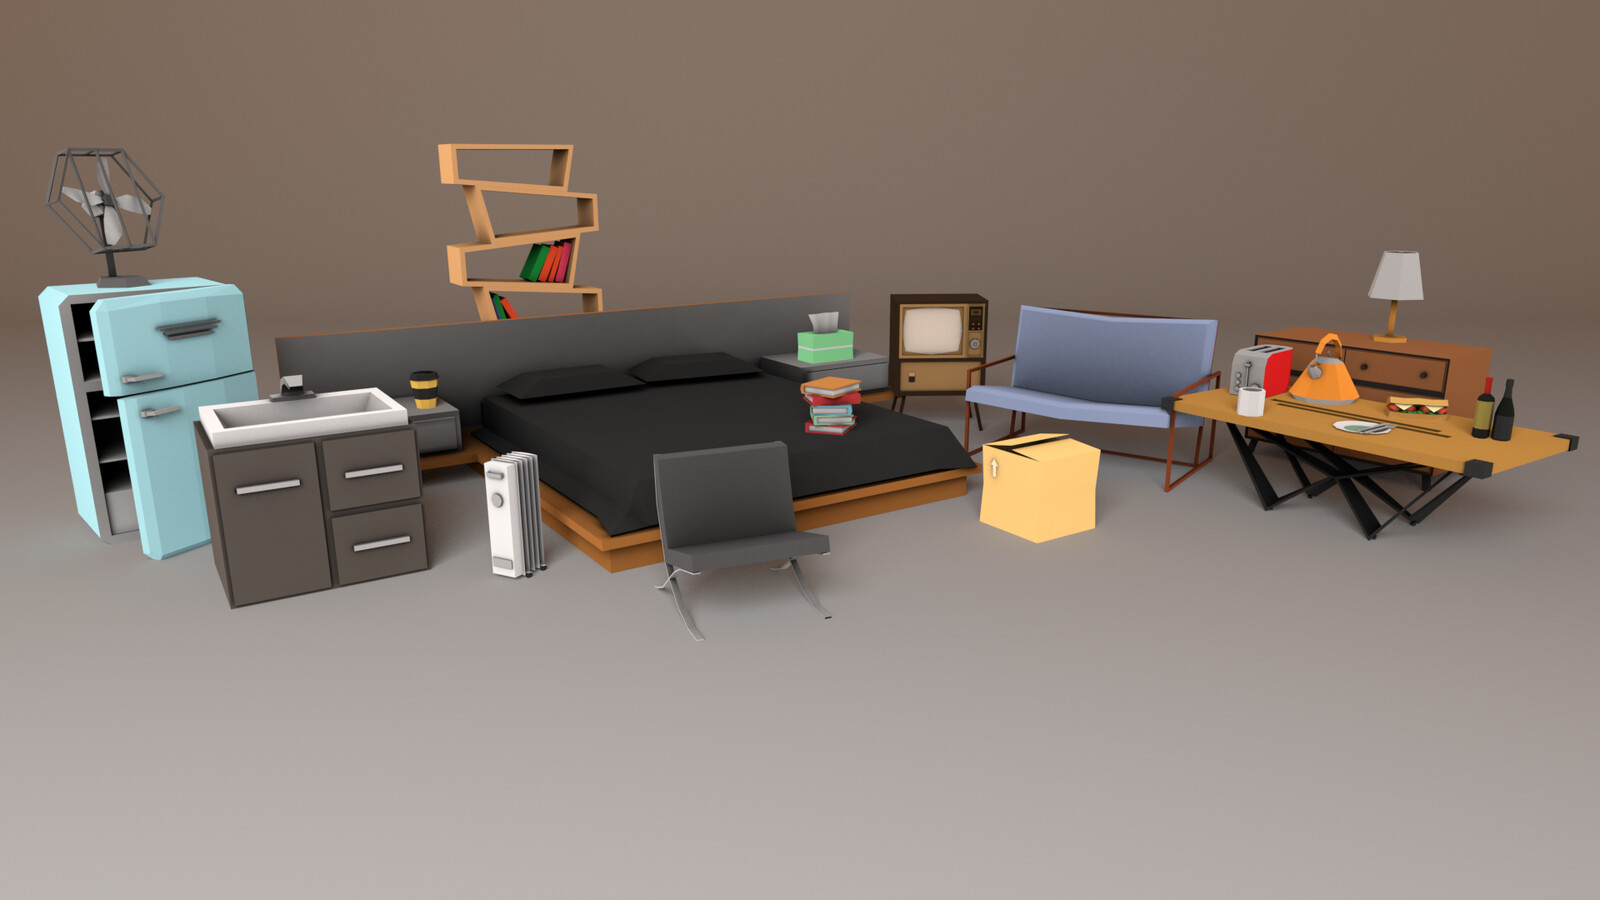 Low-poly Household Props